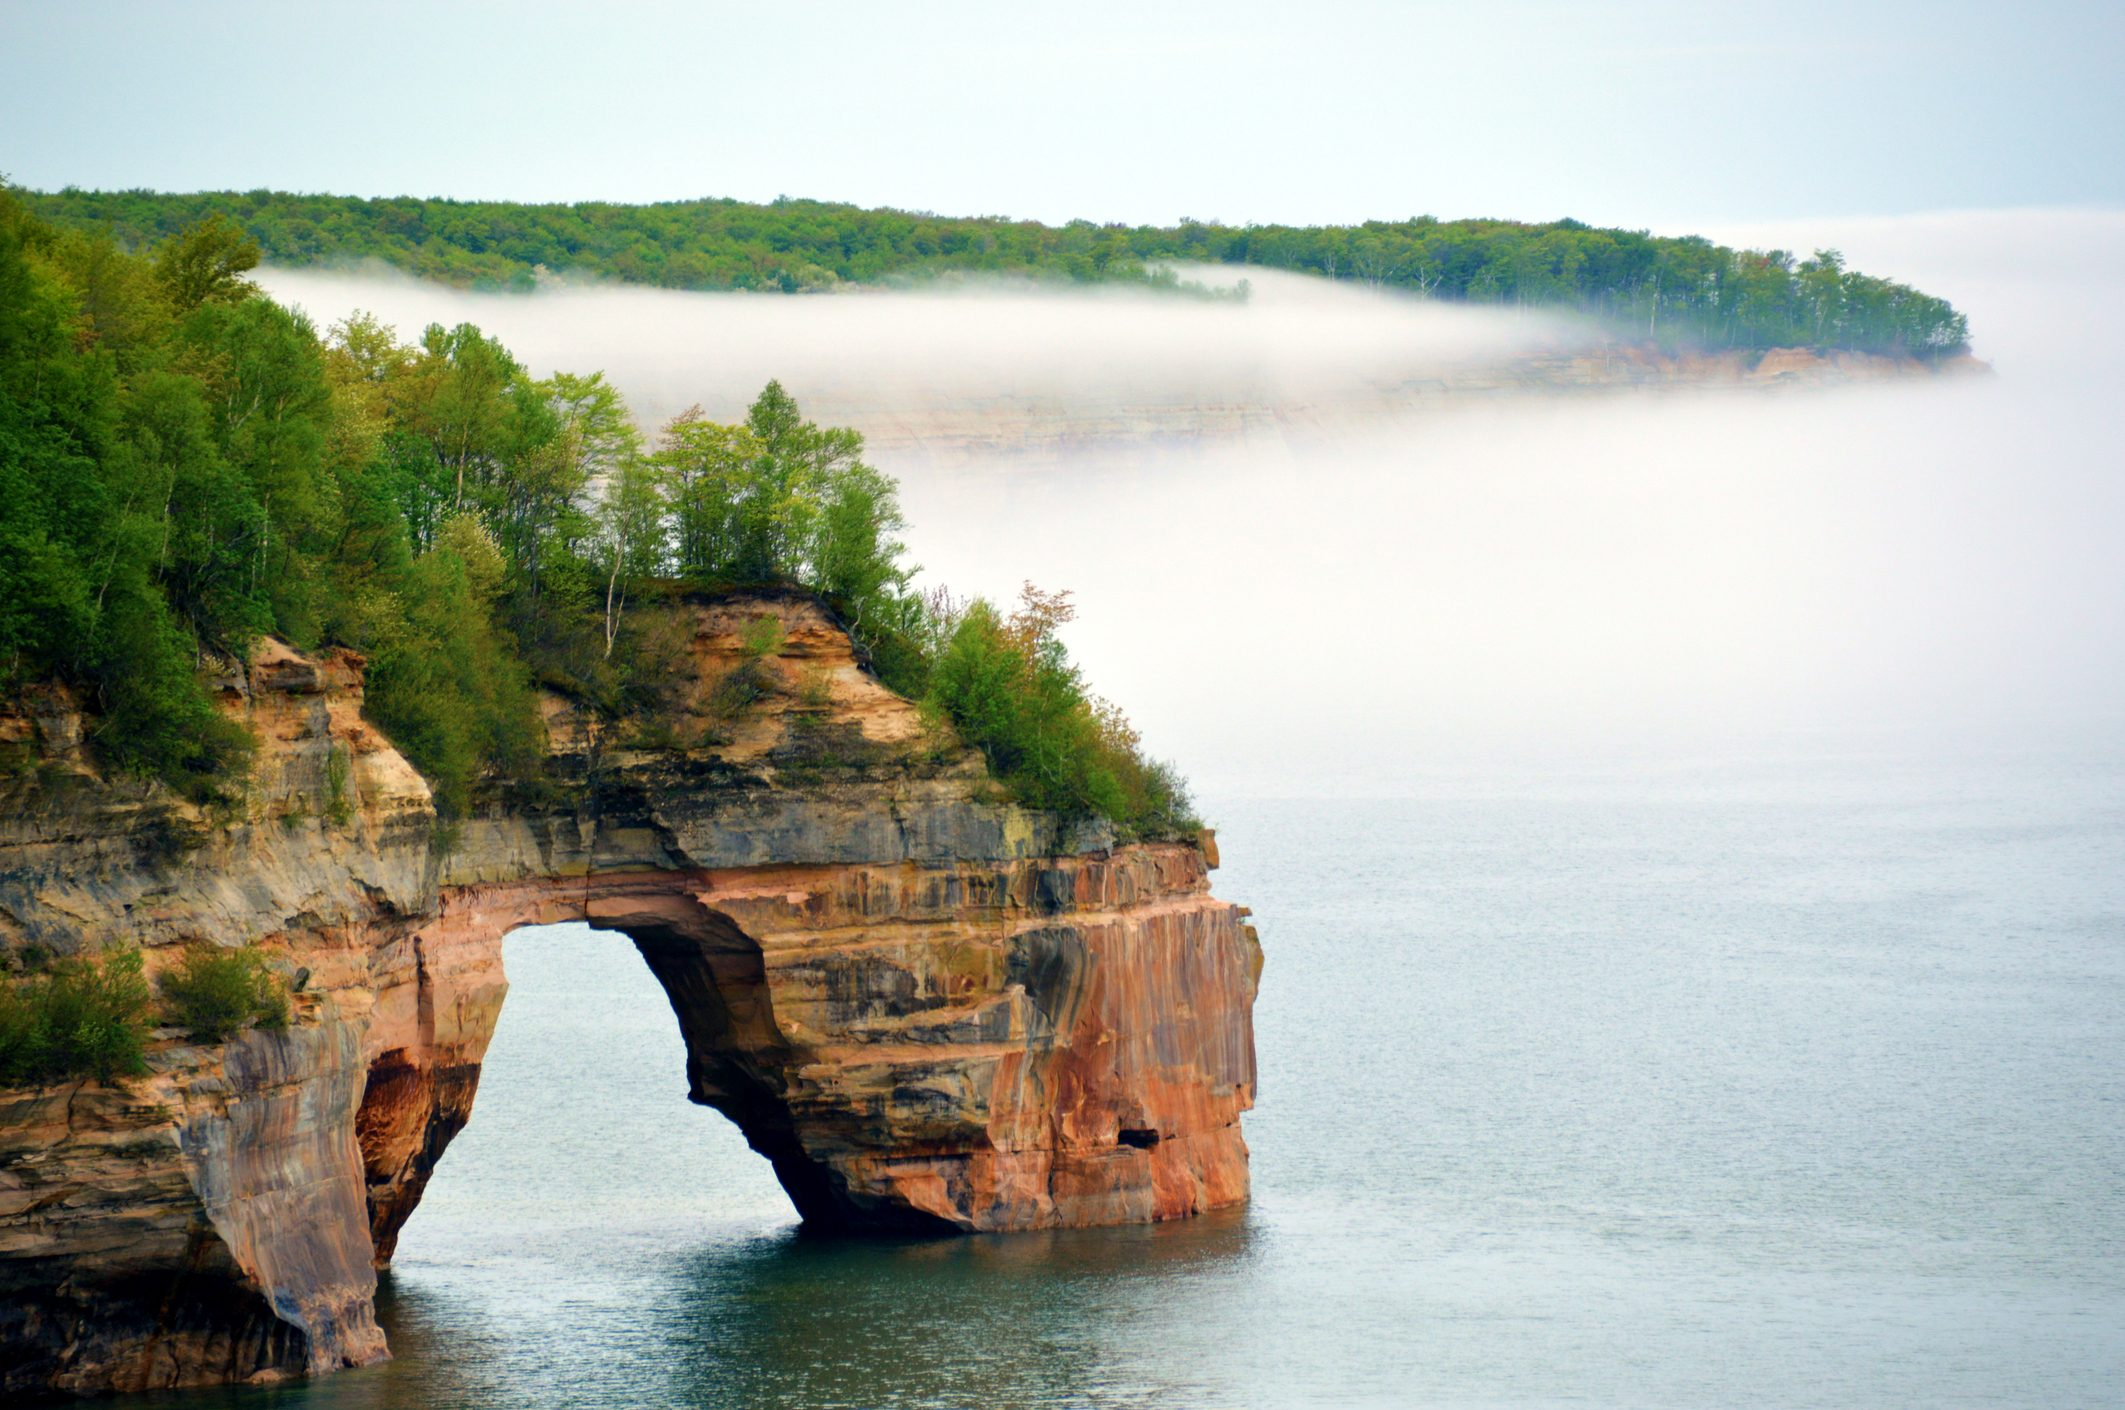 One of the arches along Pictured Rocks National Lakeshore in Michigan's Upper Peninsula with mist in the background